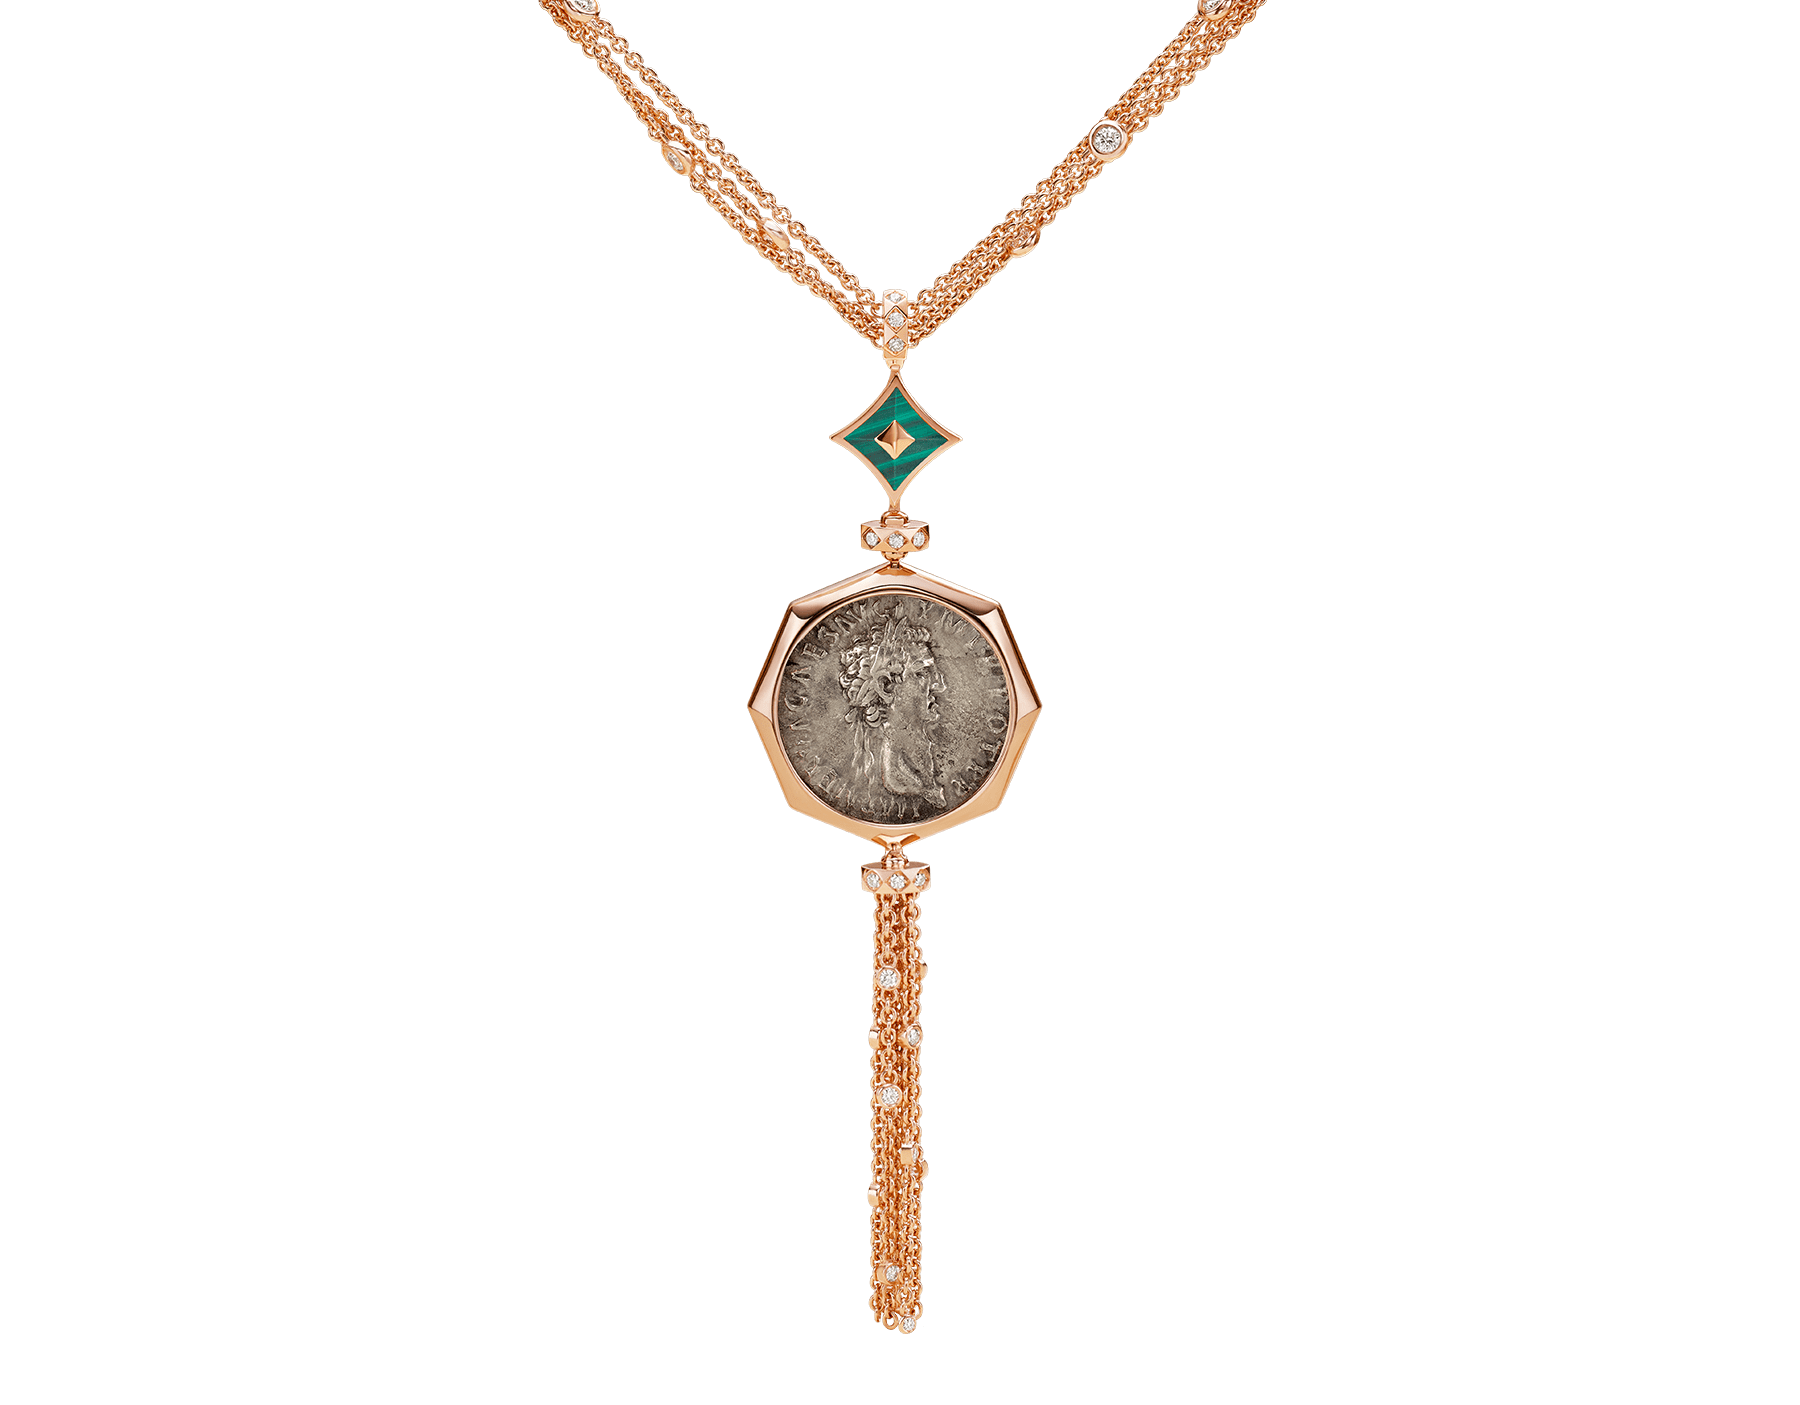 Monete 18 kt rose gold necklace set with an ancient coin, malachite elements and pavé diamonds 355962 image 1